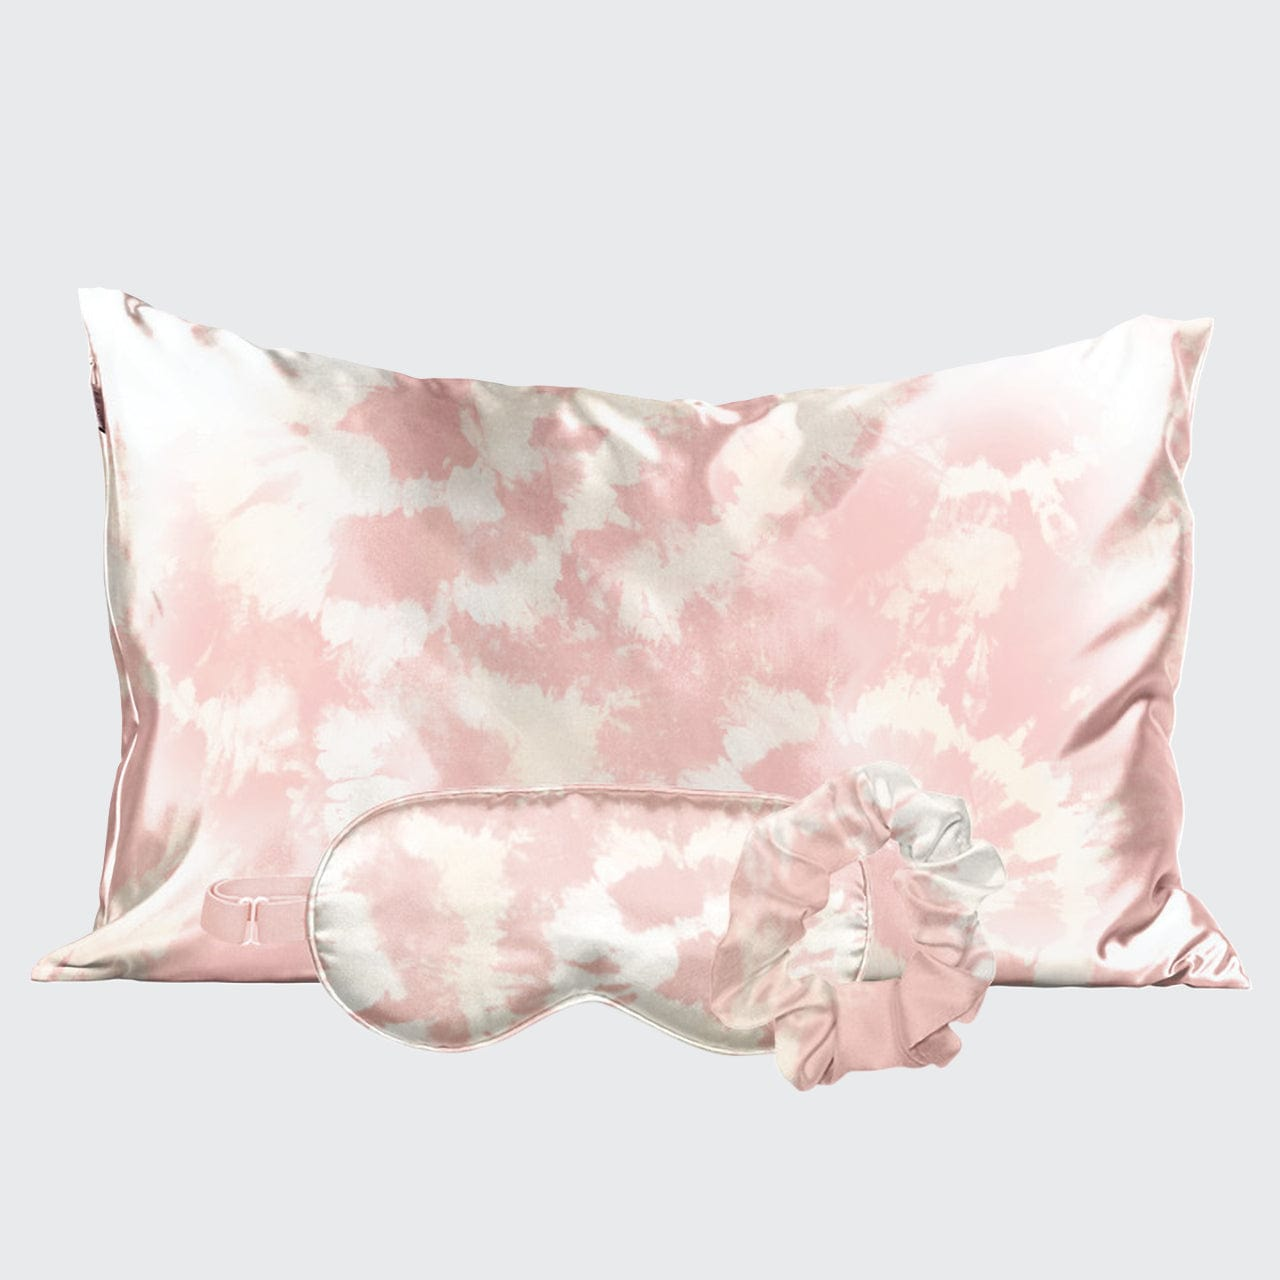 Satin Sleep Set - Blush Tie Dye 1 standard size pillowcase, 1 eye mask, and 1 scrunchie